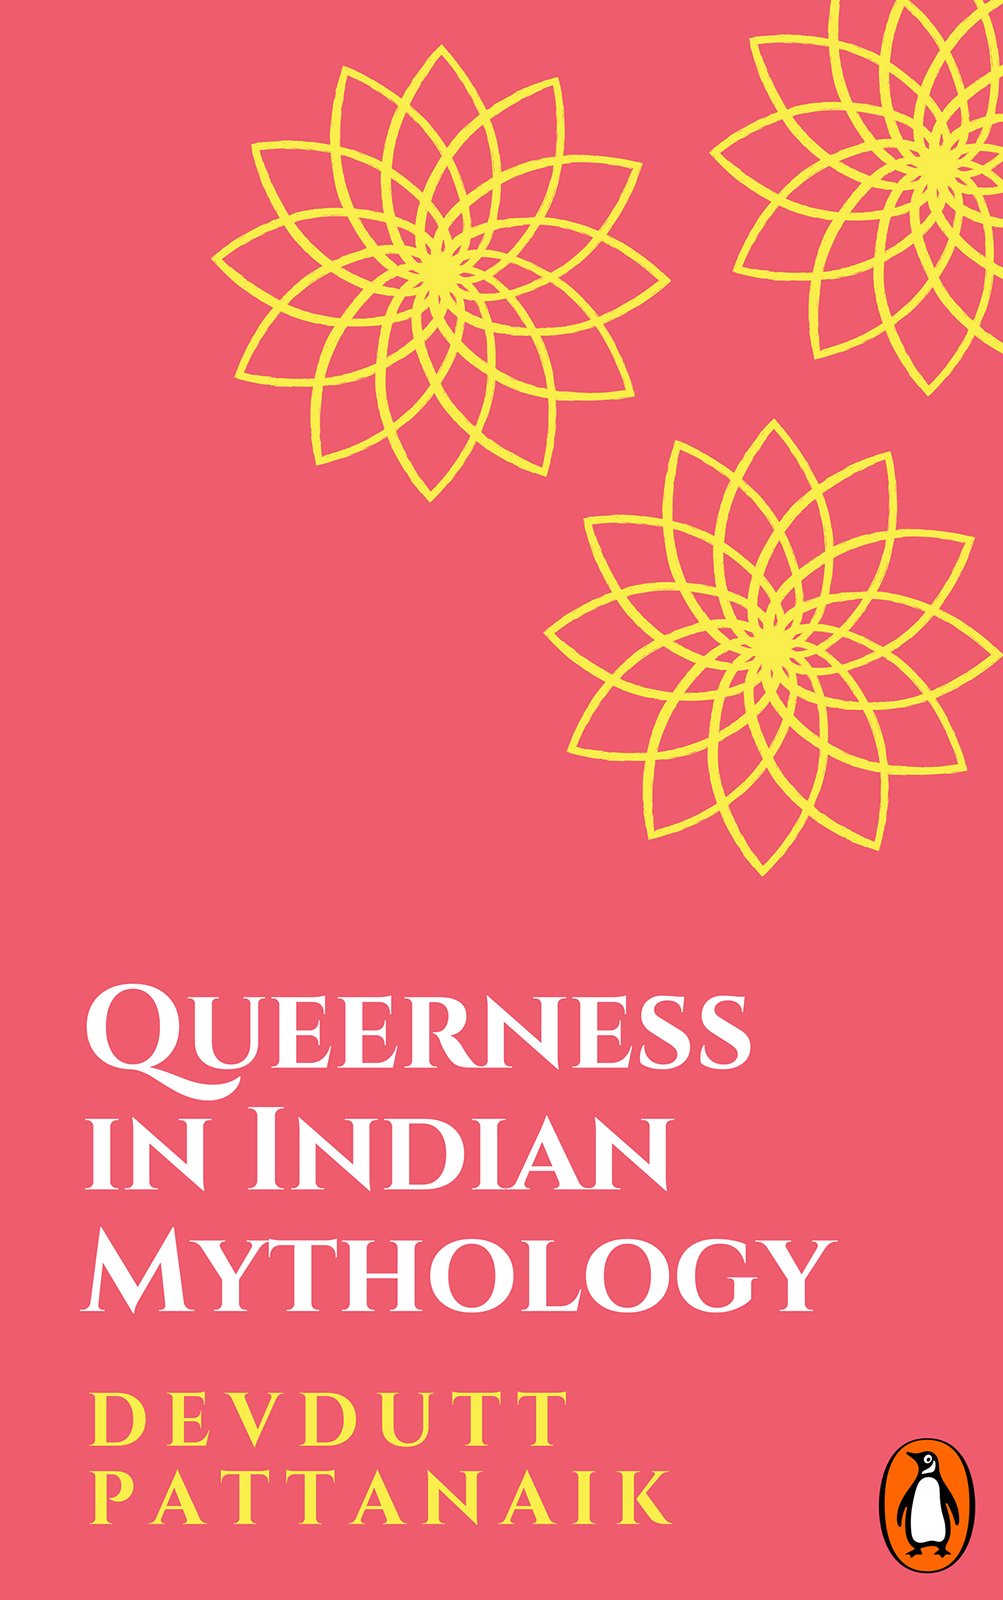 Queerness in Indian Mythology